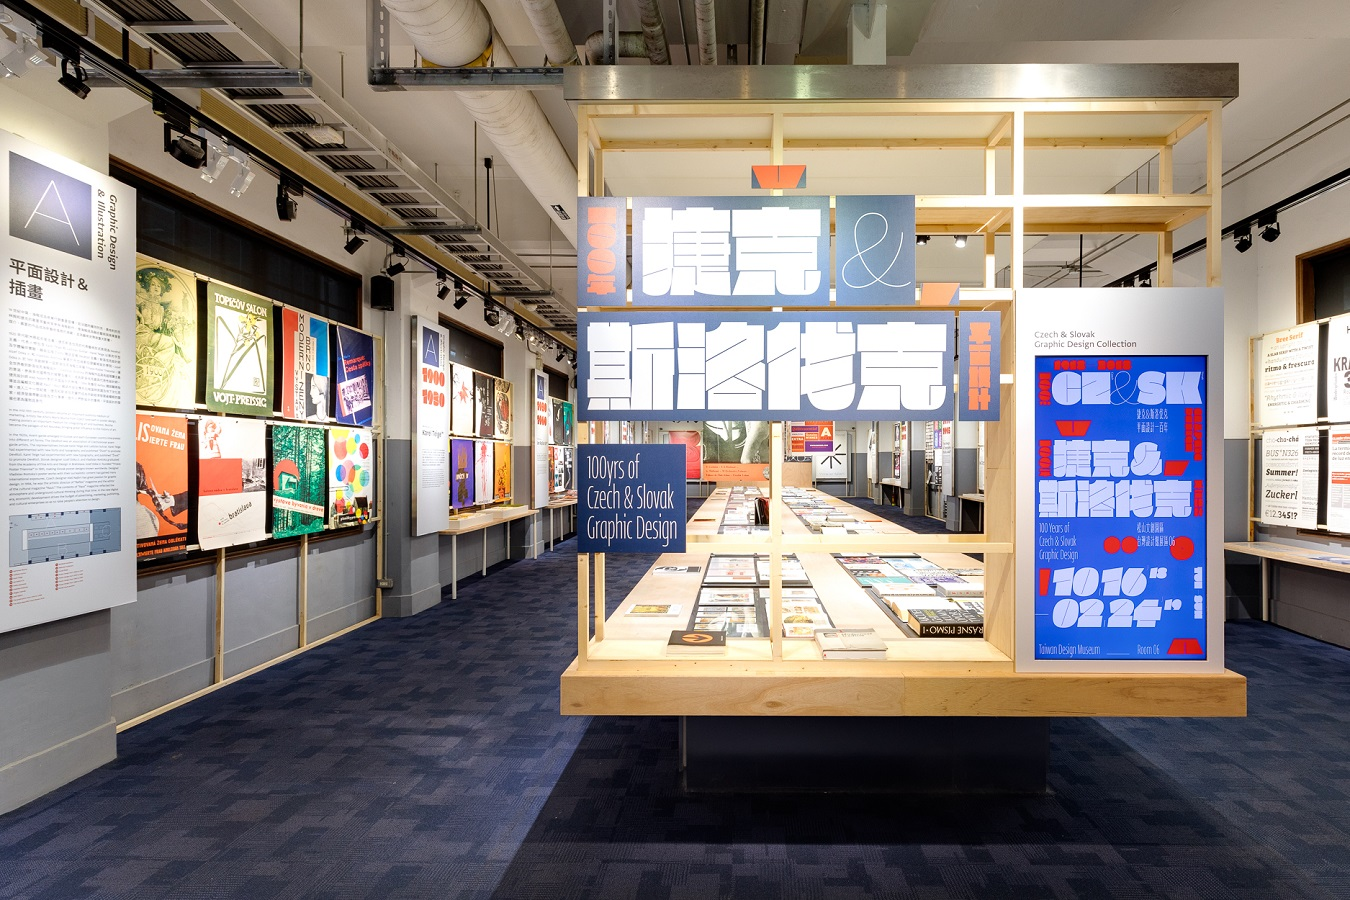 Walking through 100 Years of Czech & Slovak Graphic Design at TDM